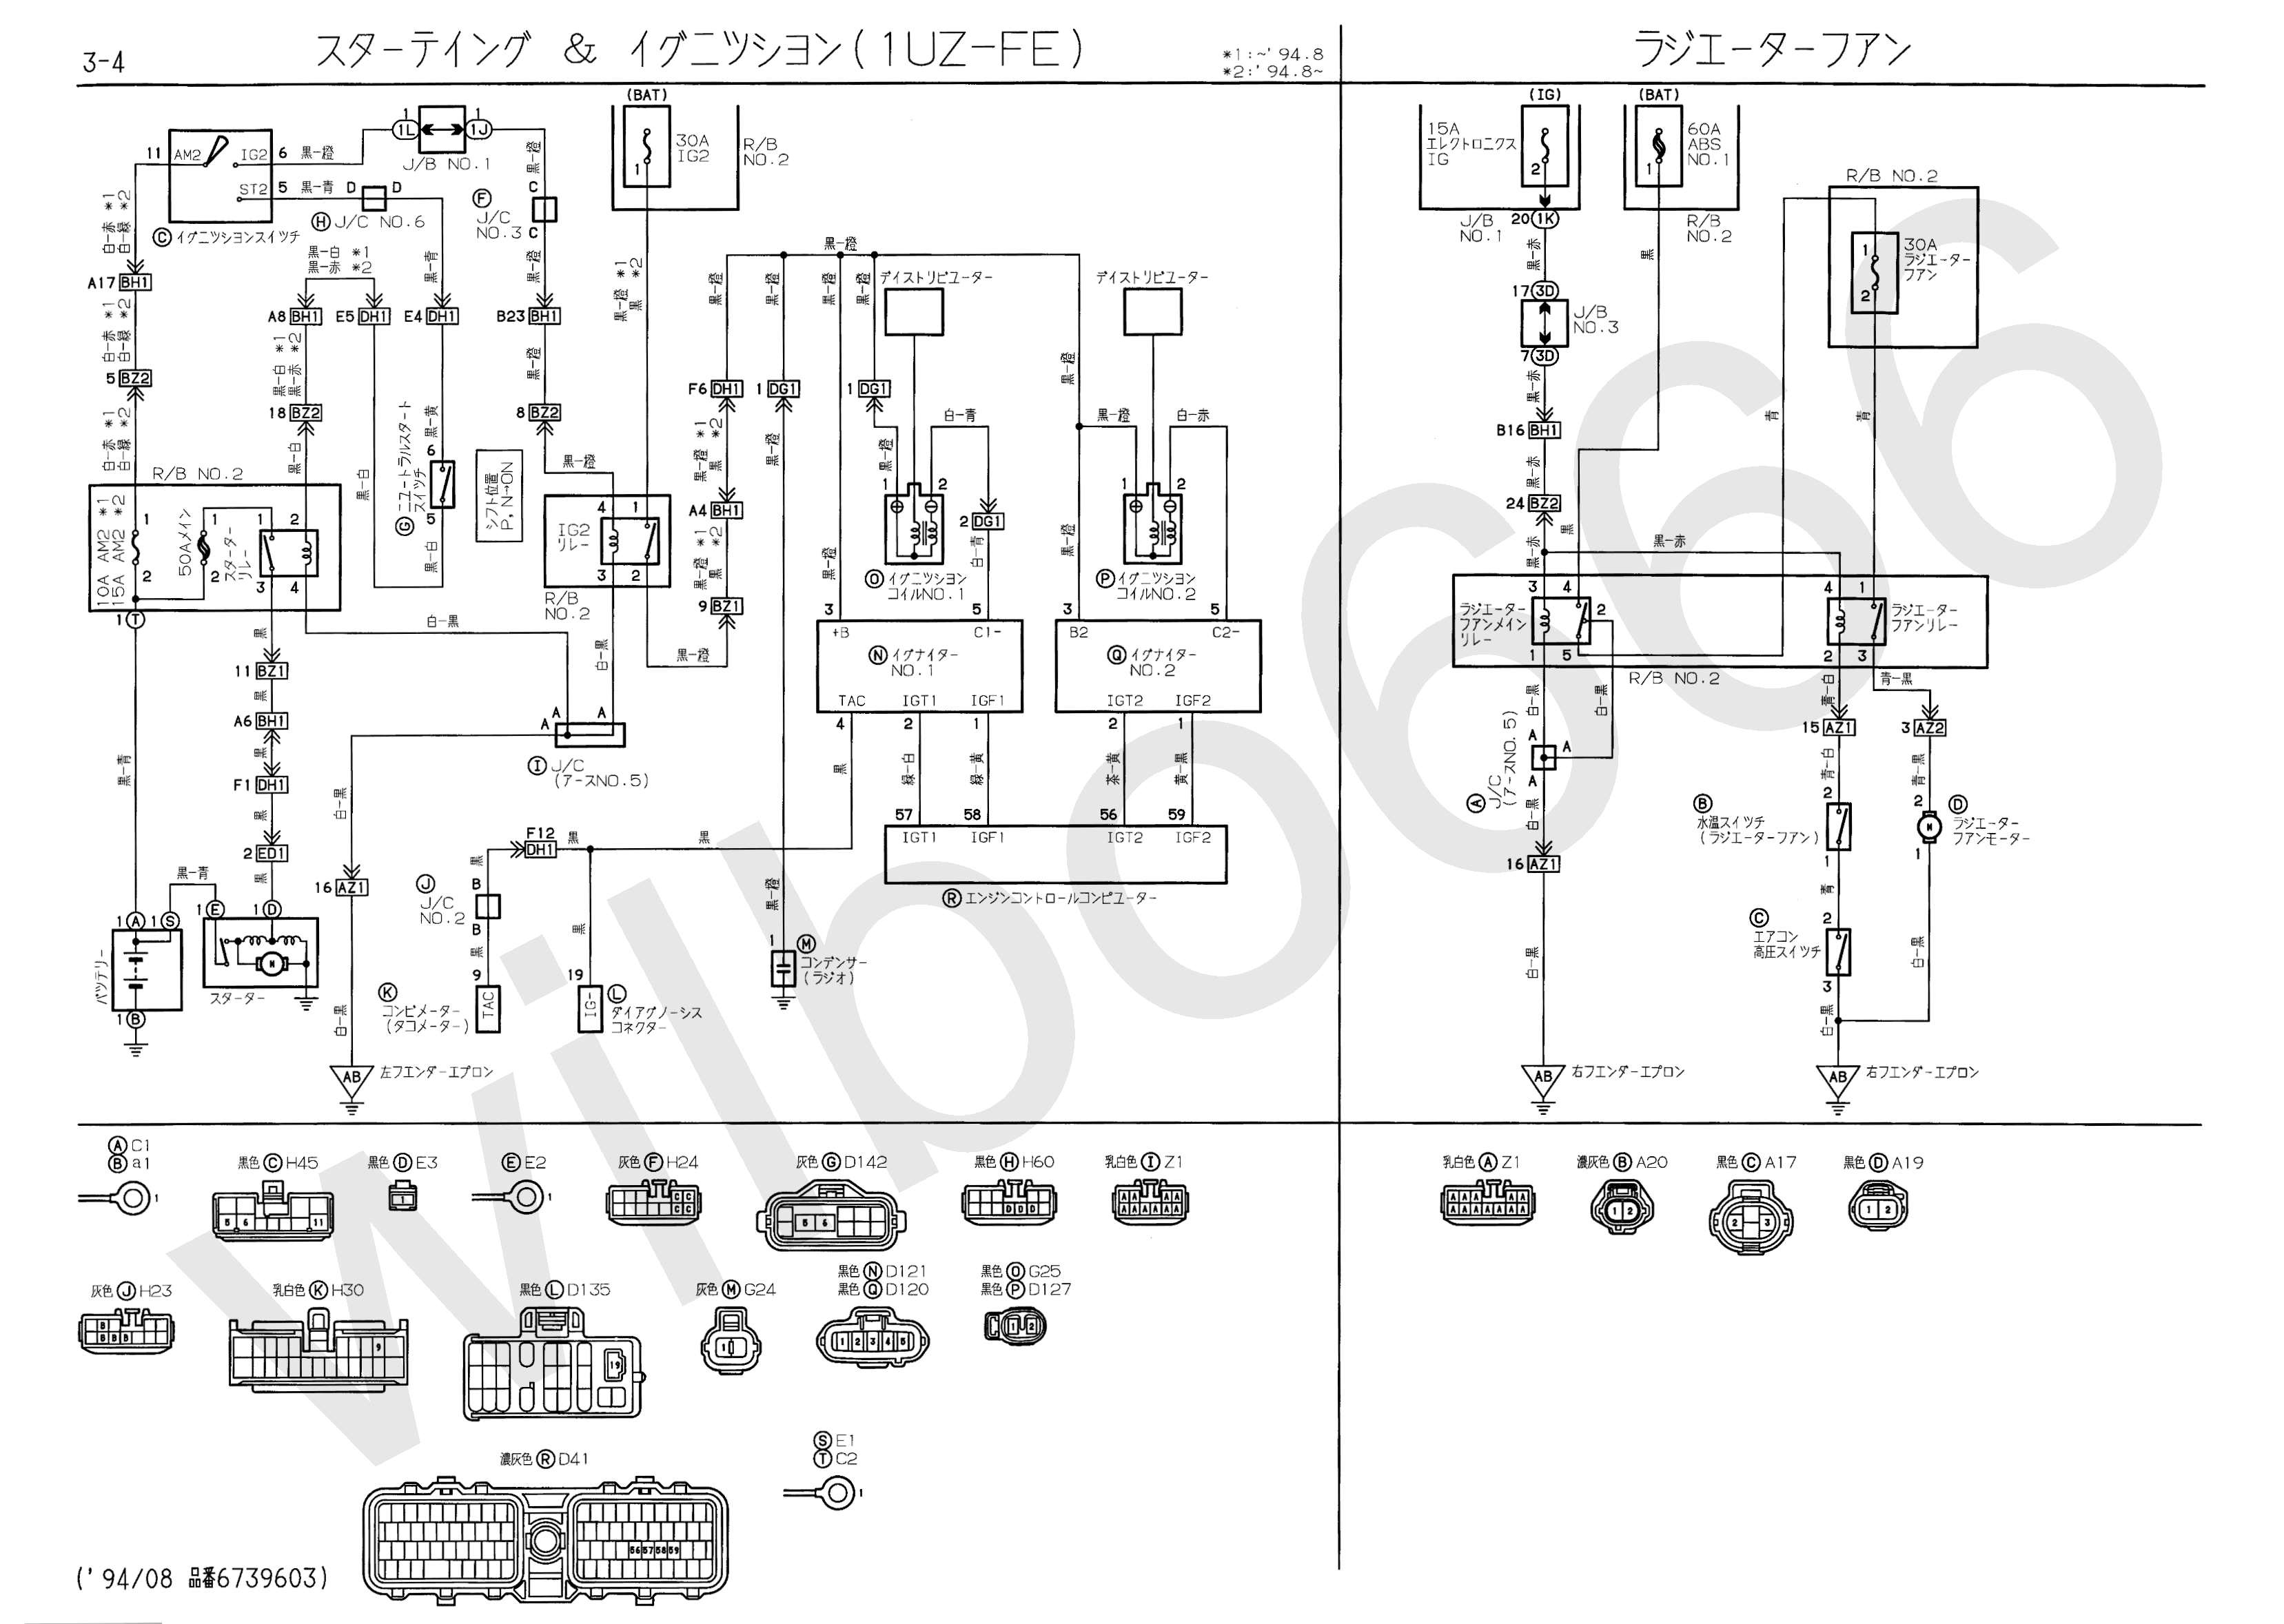 JZS14%23%2C UZS14%23 Electrical Wiring Diagram 6739604 3 4 wilbo666 1uz fe uzs143 aristo engine wiring